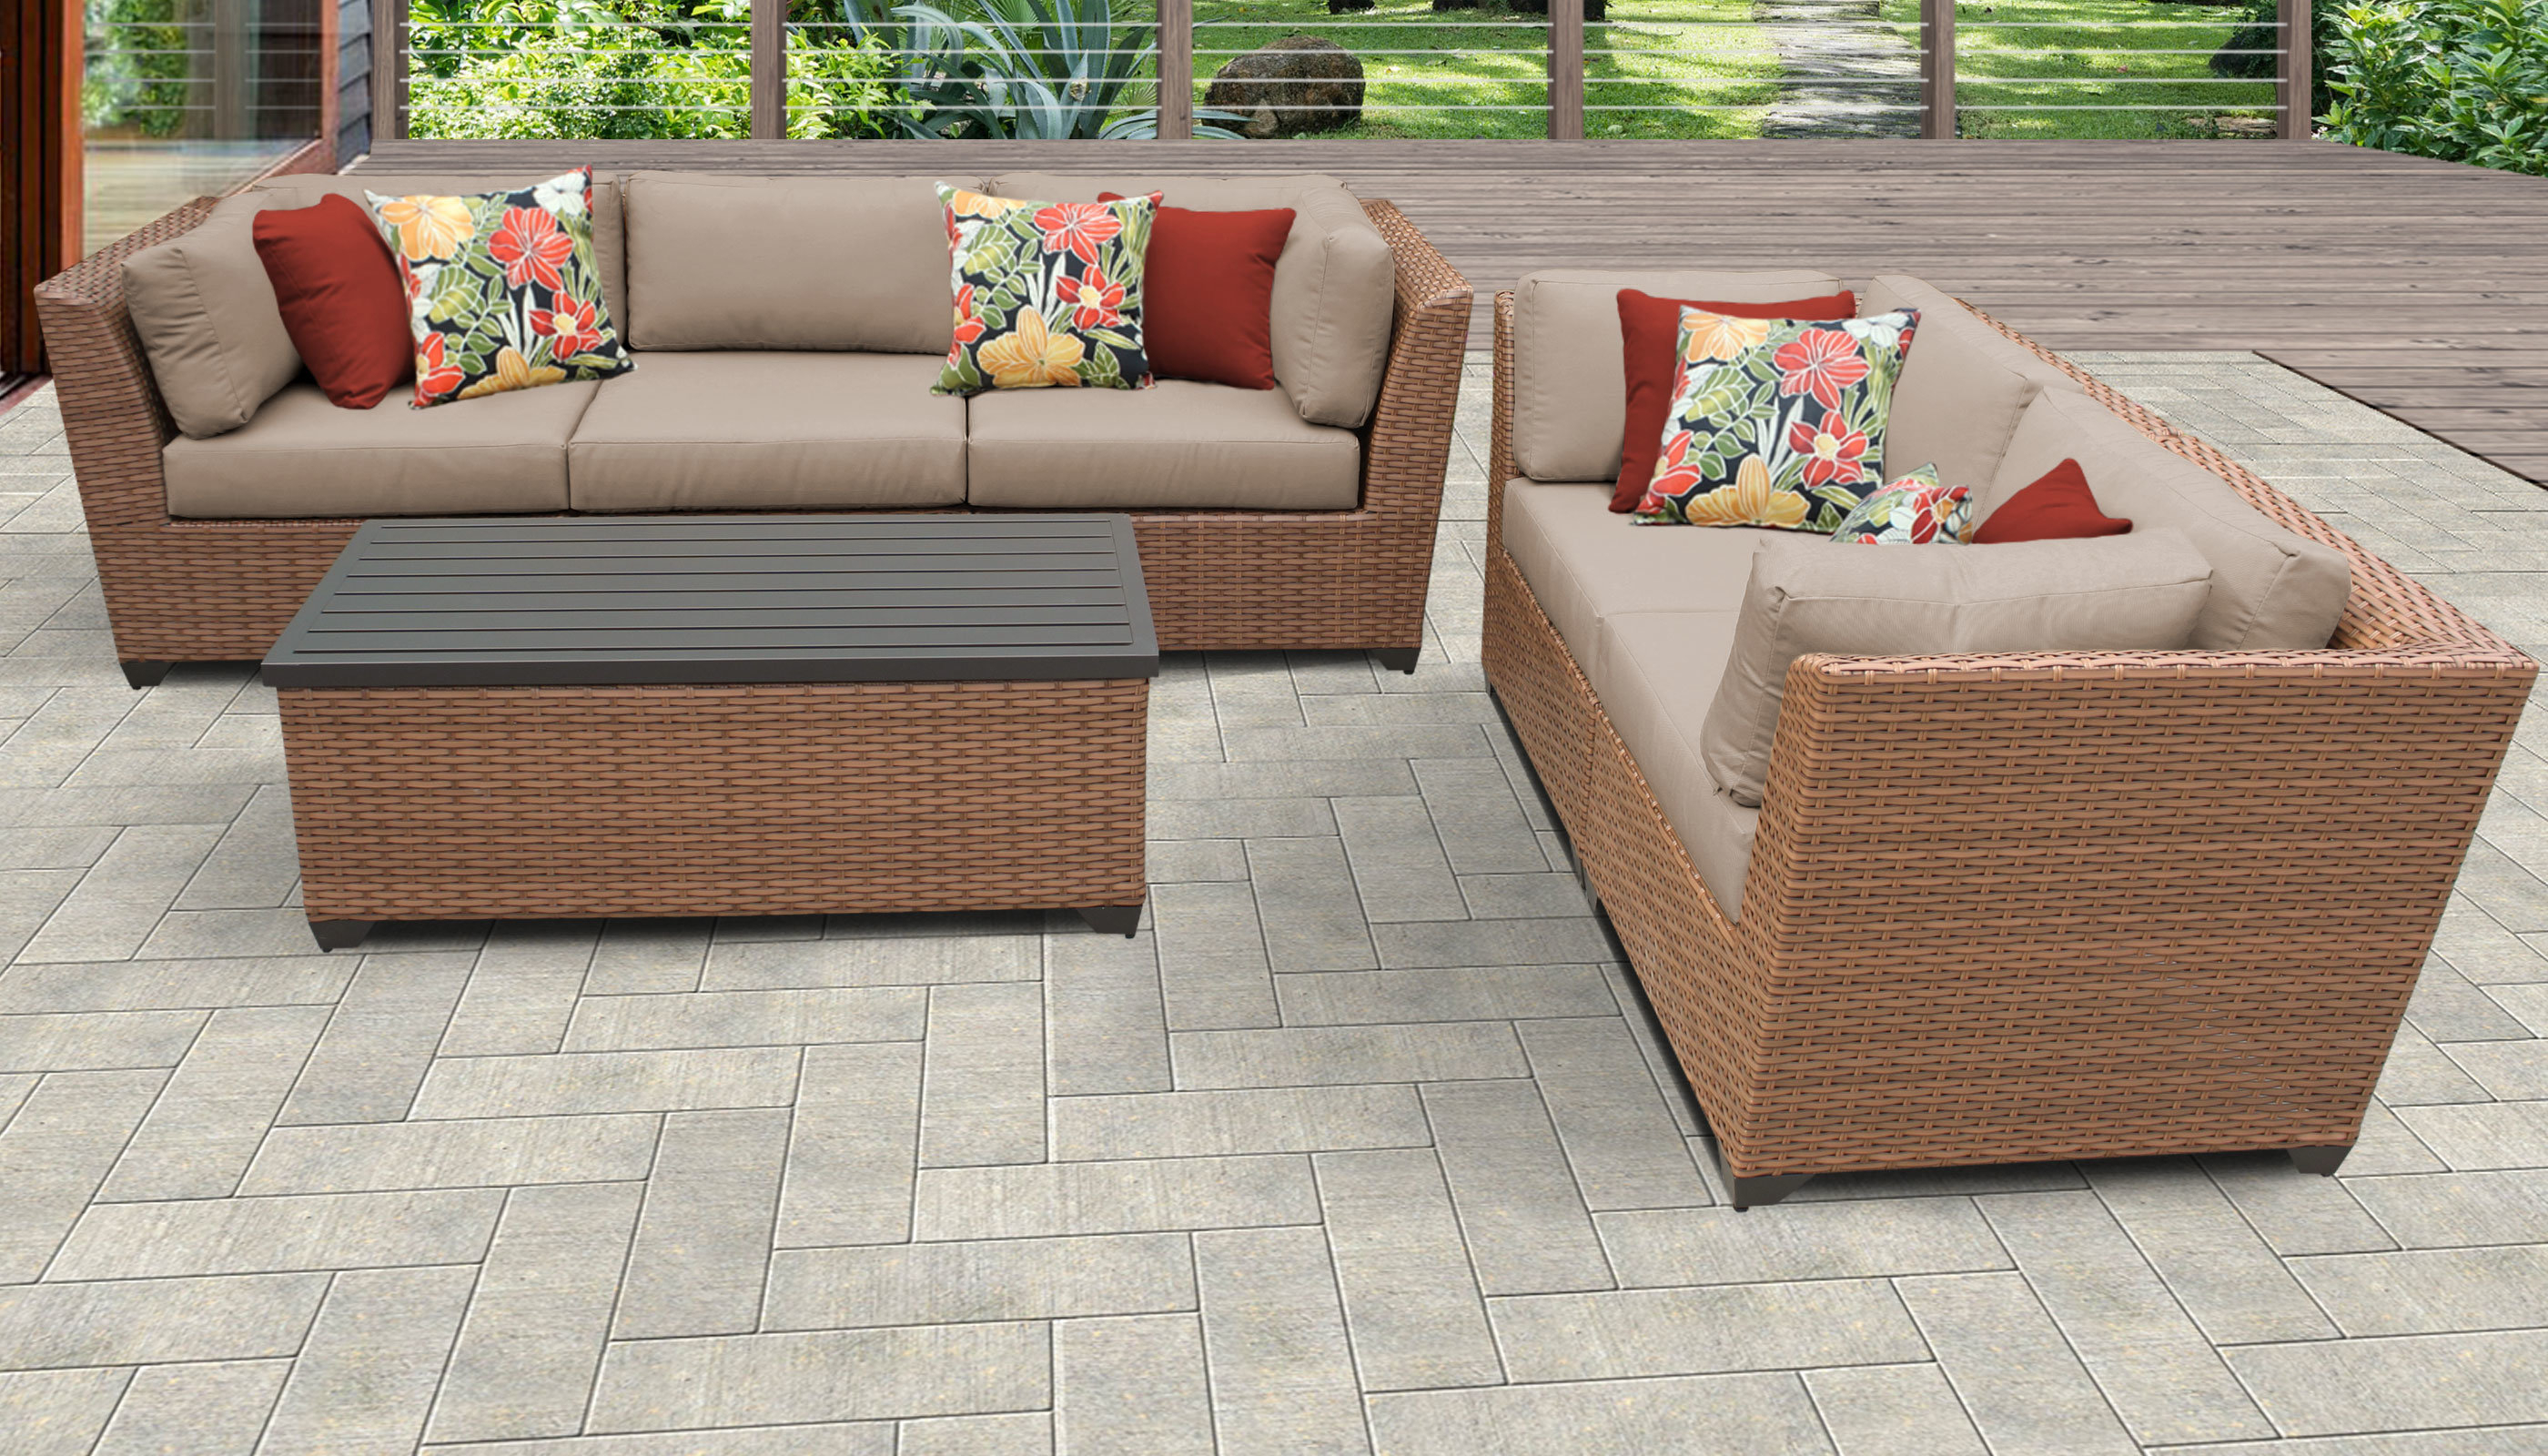 Laguna Outdoor Sofas With Cushions With Fashionable Laguna 6 Piece Outdoor Sofa Seating Group With Cushions (View 7 of 20)